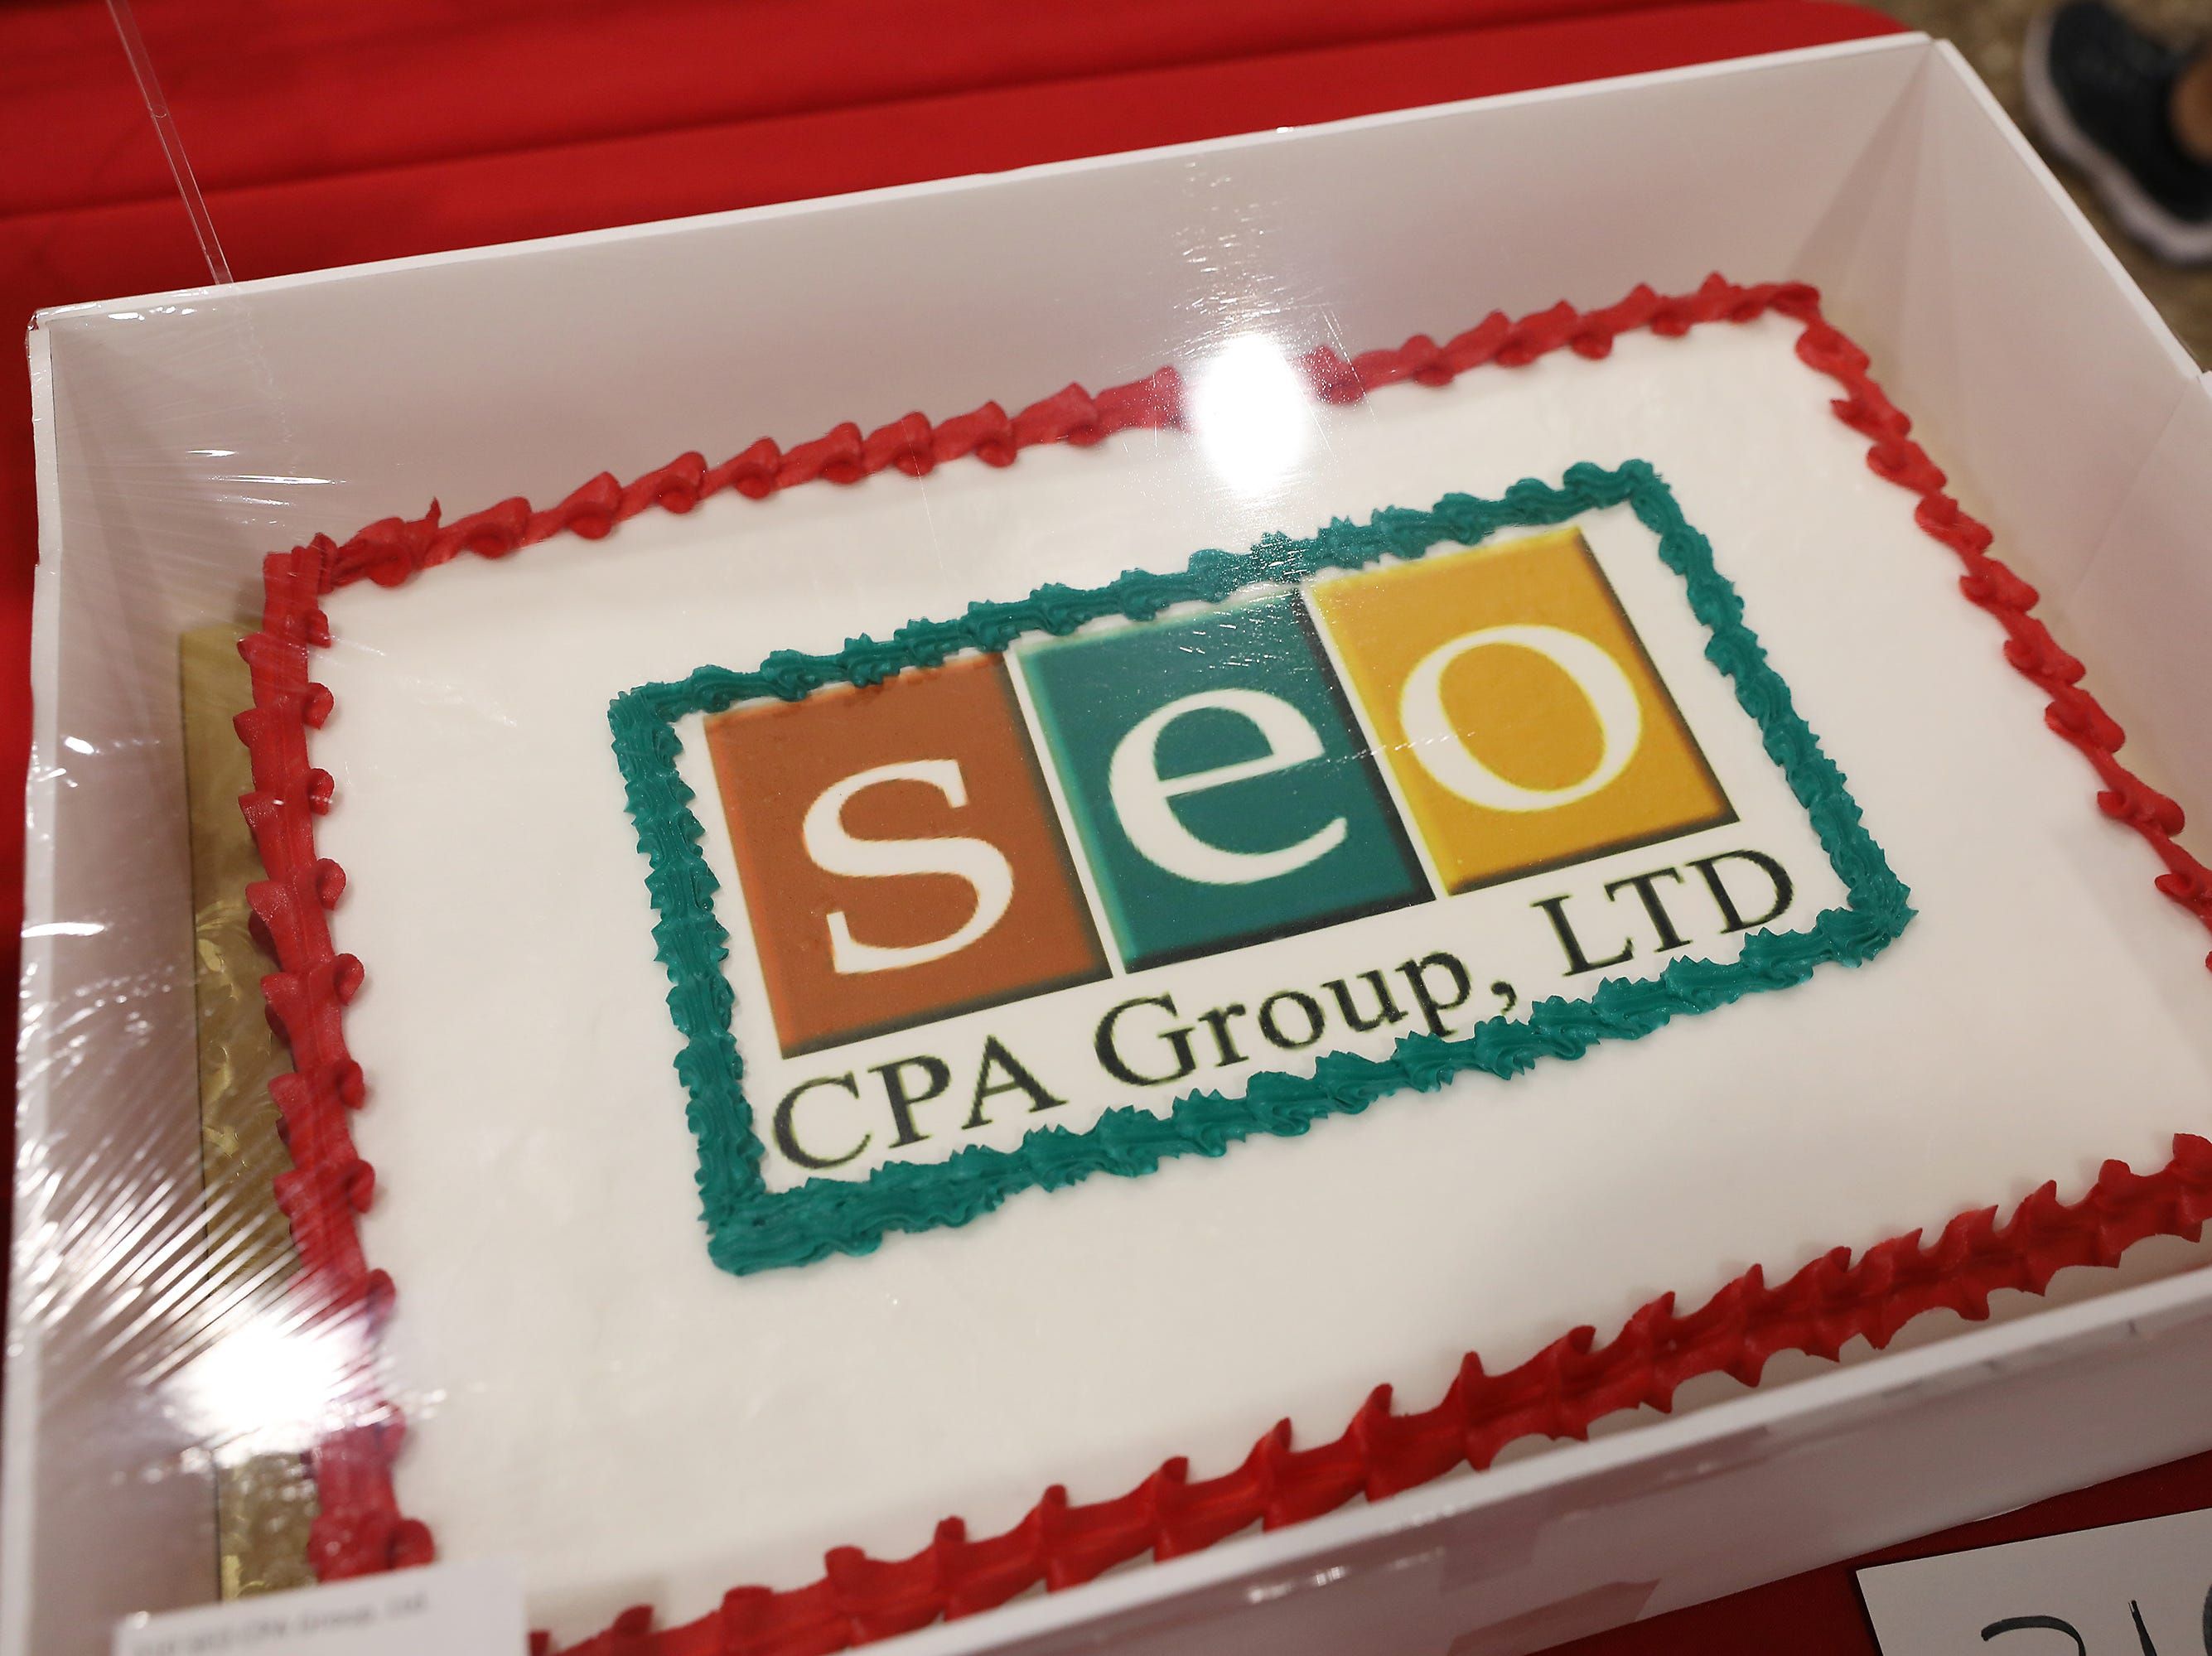 1:15 P.M. Friday cake 310 SEO CPA Group. - $50 American Pride gift card, $25 gift cards to Bee Clean Car Wash and Creno's